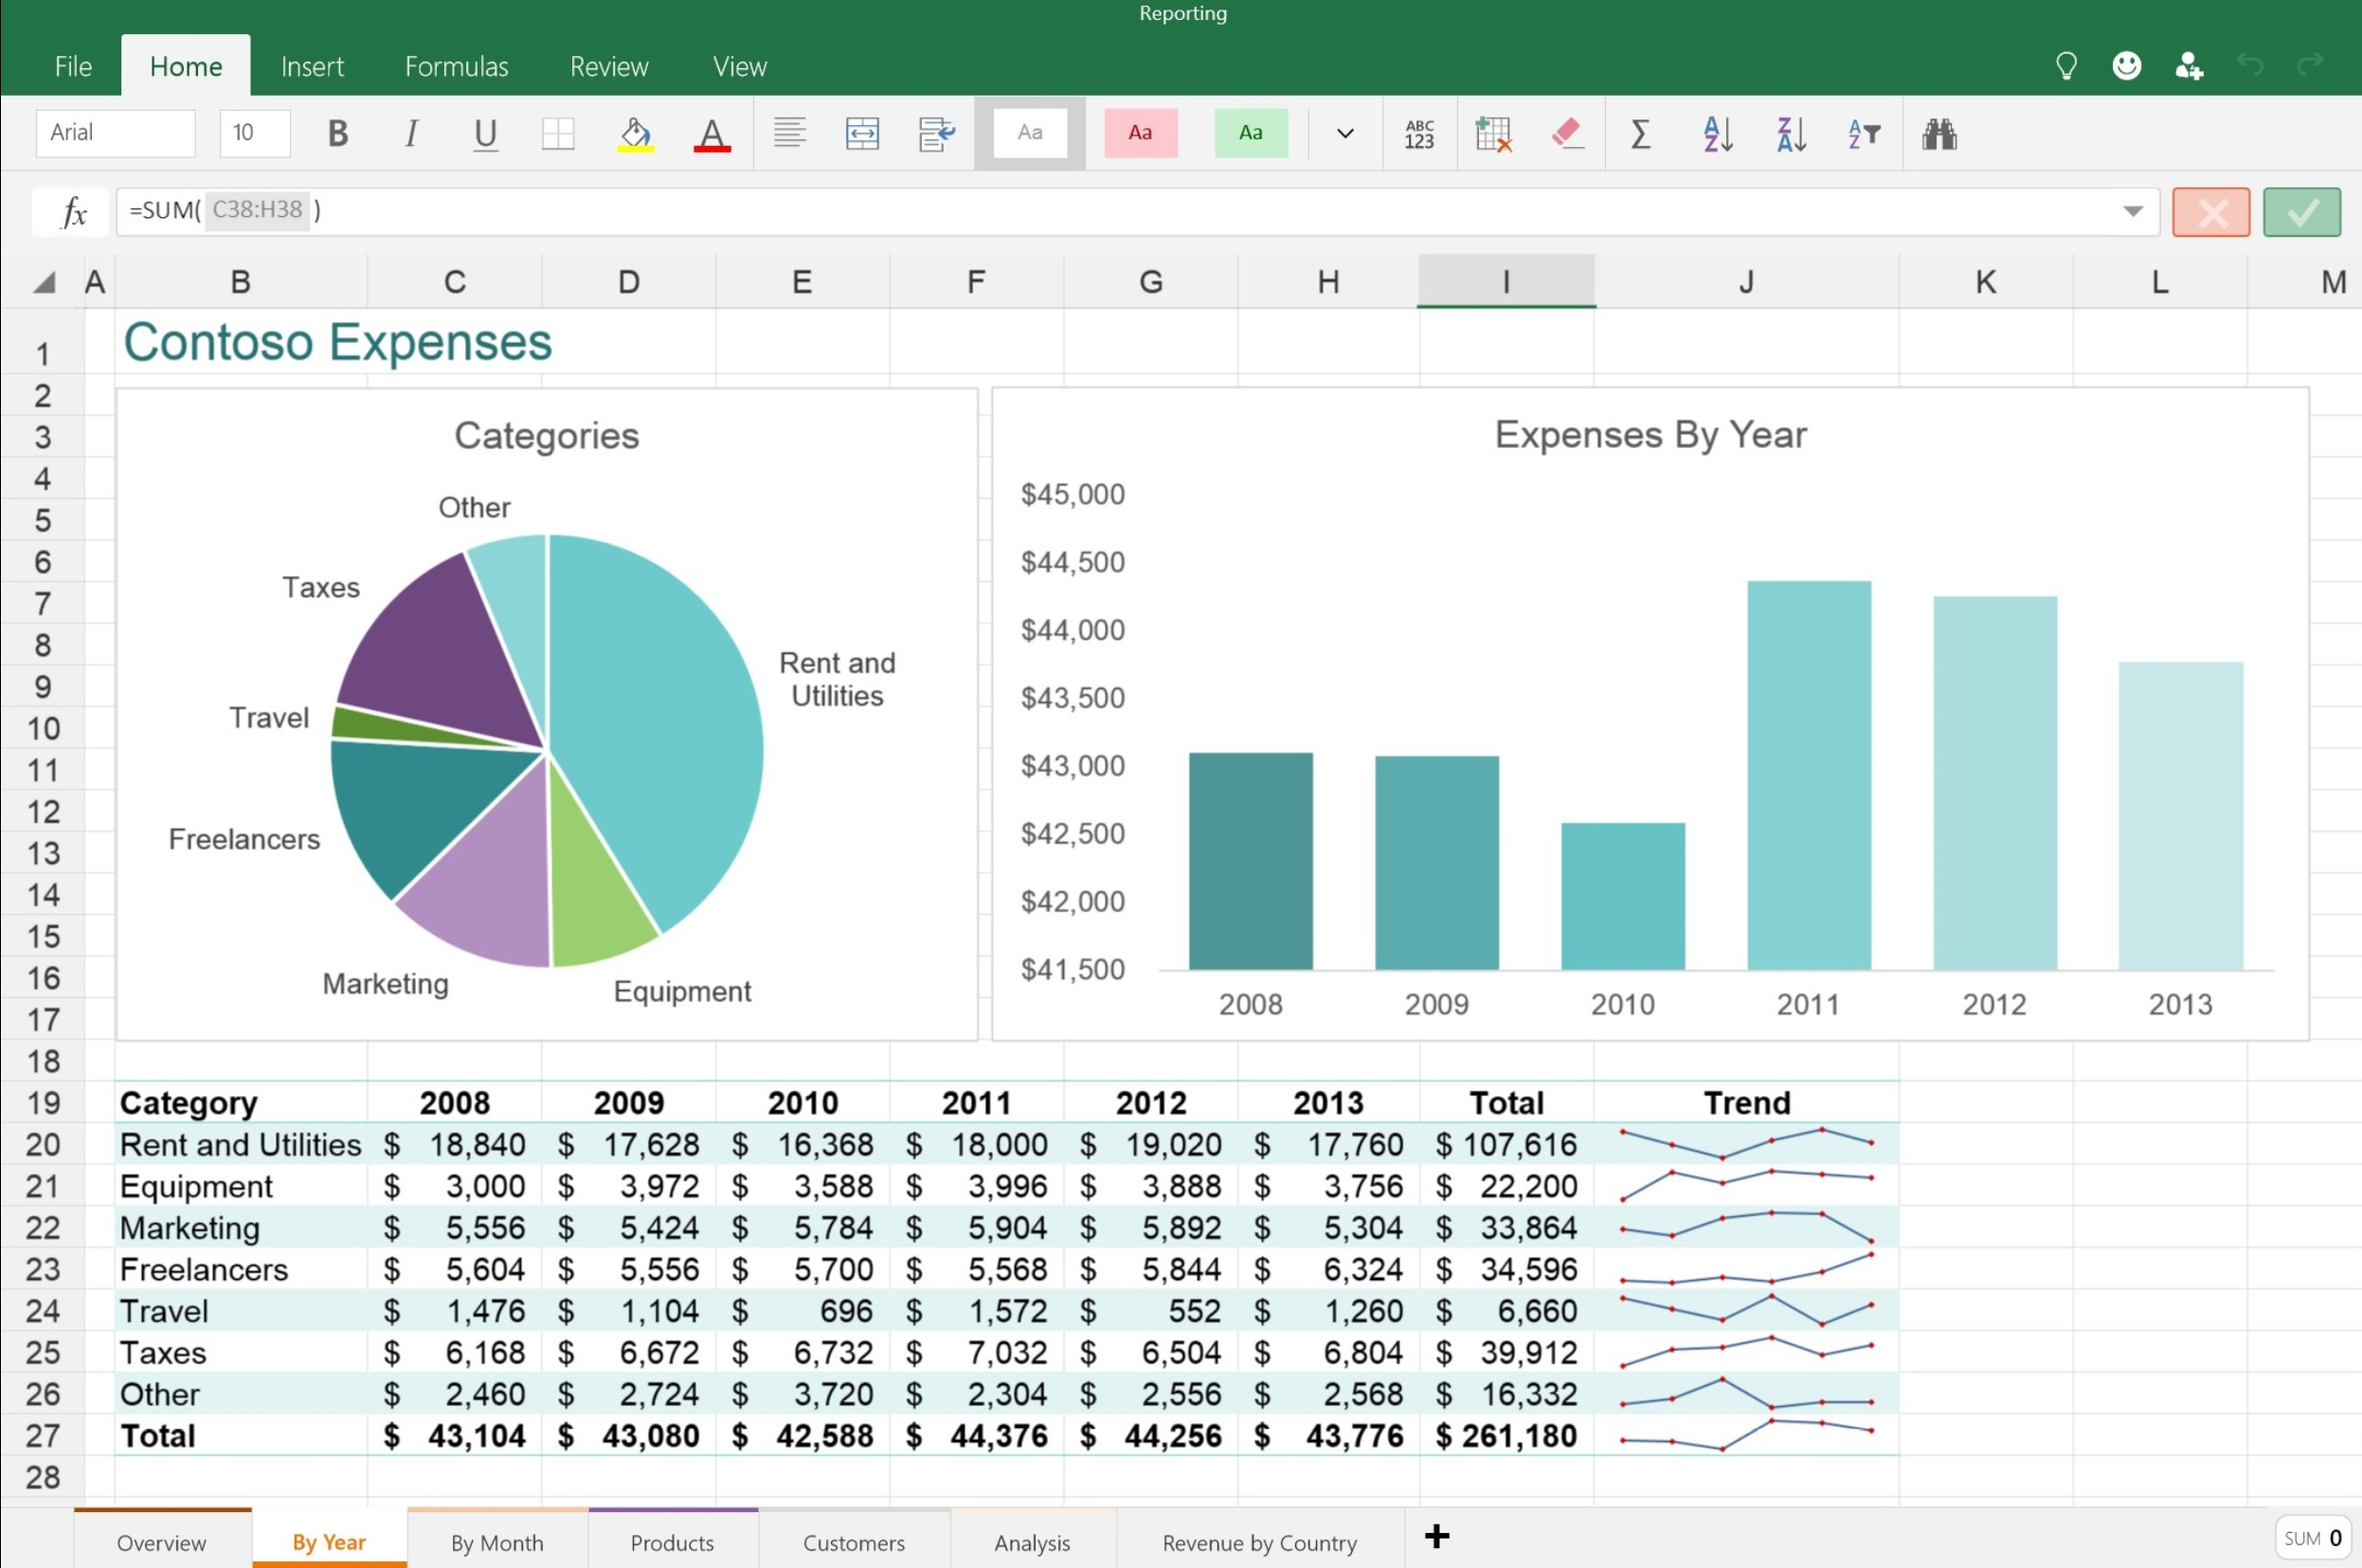 Ediblewildsus  Remarkable Features Available In The New Word Excel And Powerpoint Apps For  With Fascinating Excel Touch App  With Awesome Least Squares Method Excel Also If Function In Excel  In Addition Map In Excel And Publish Excel To Web As Well As Make Histogram Excel Additionally Linking Data In Excel From Mspowerusercom With Ediblewildsus  Fascinating Features Available In The New Word Excel And Powerpoint Apps For  With Awesome Excel Touch App  And Remarkable Least Squares Method Excel Also If Function In Excel  In Addition Map In Excel From Mspowerusercom